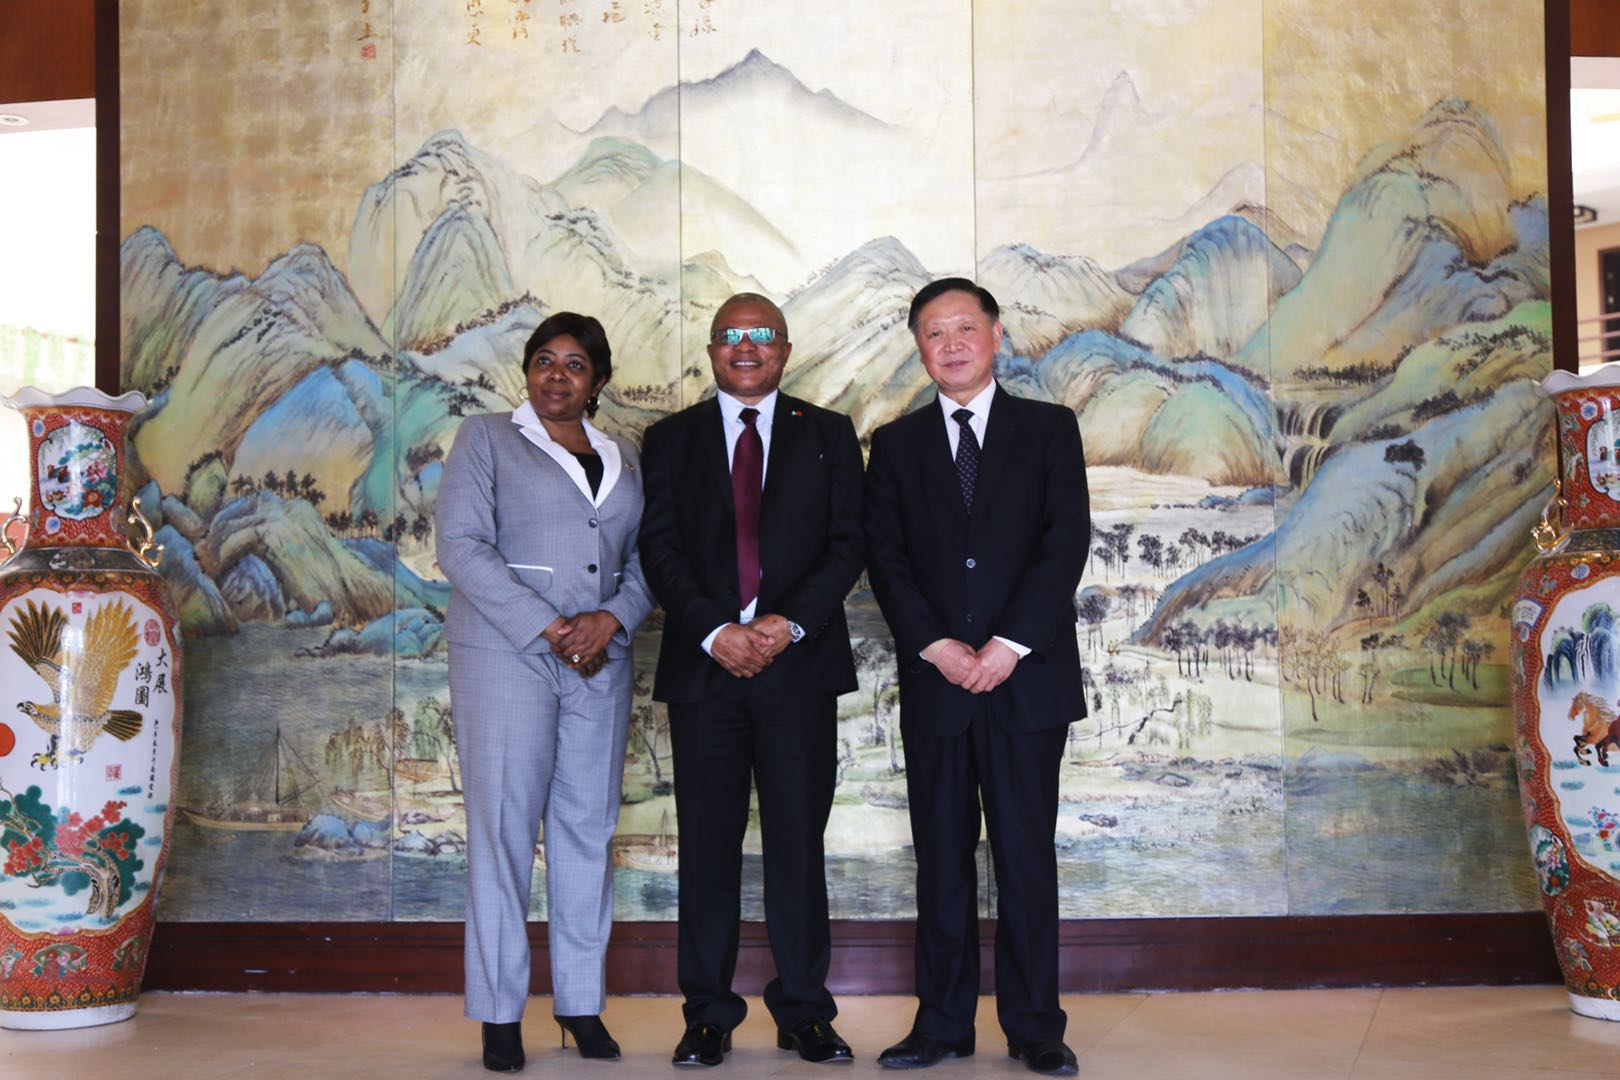 Consul General of Nigeria in Shanghai paid a visit to Longrich